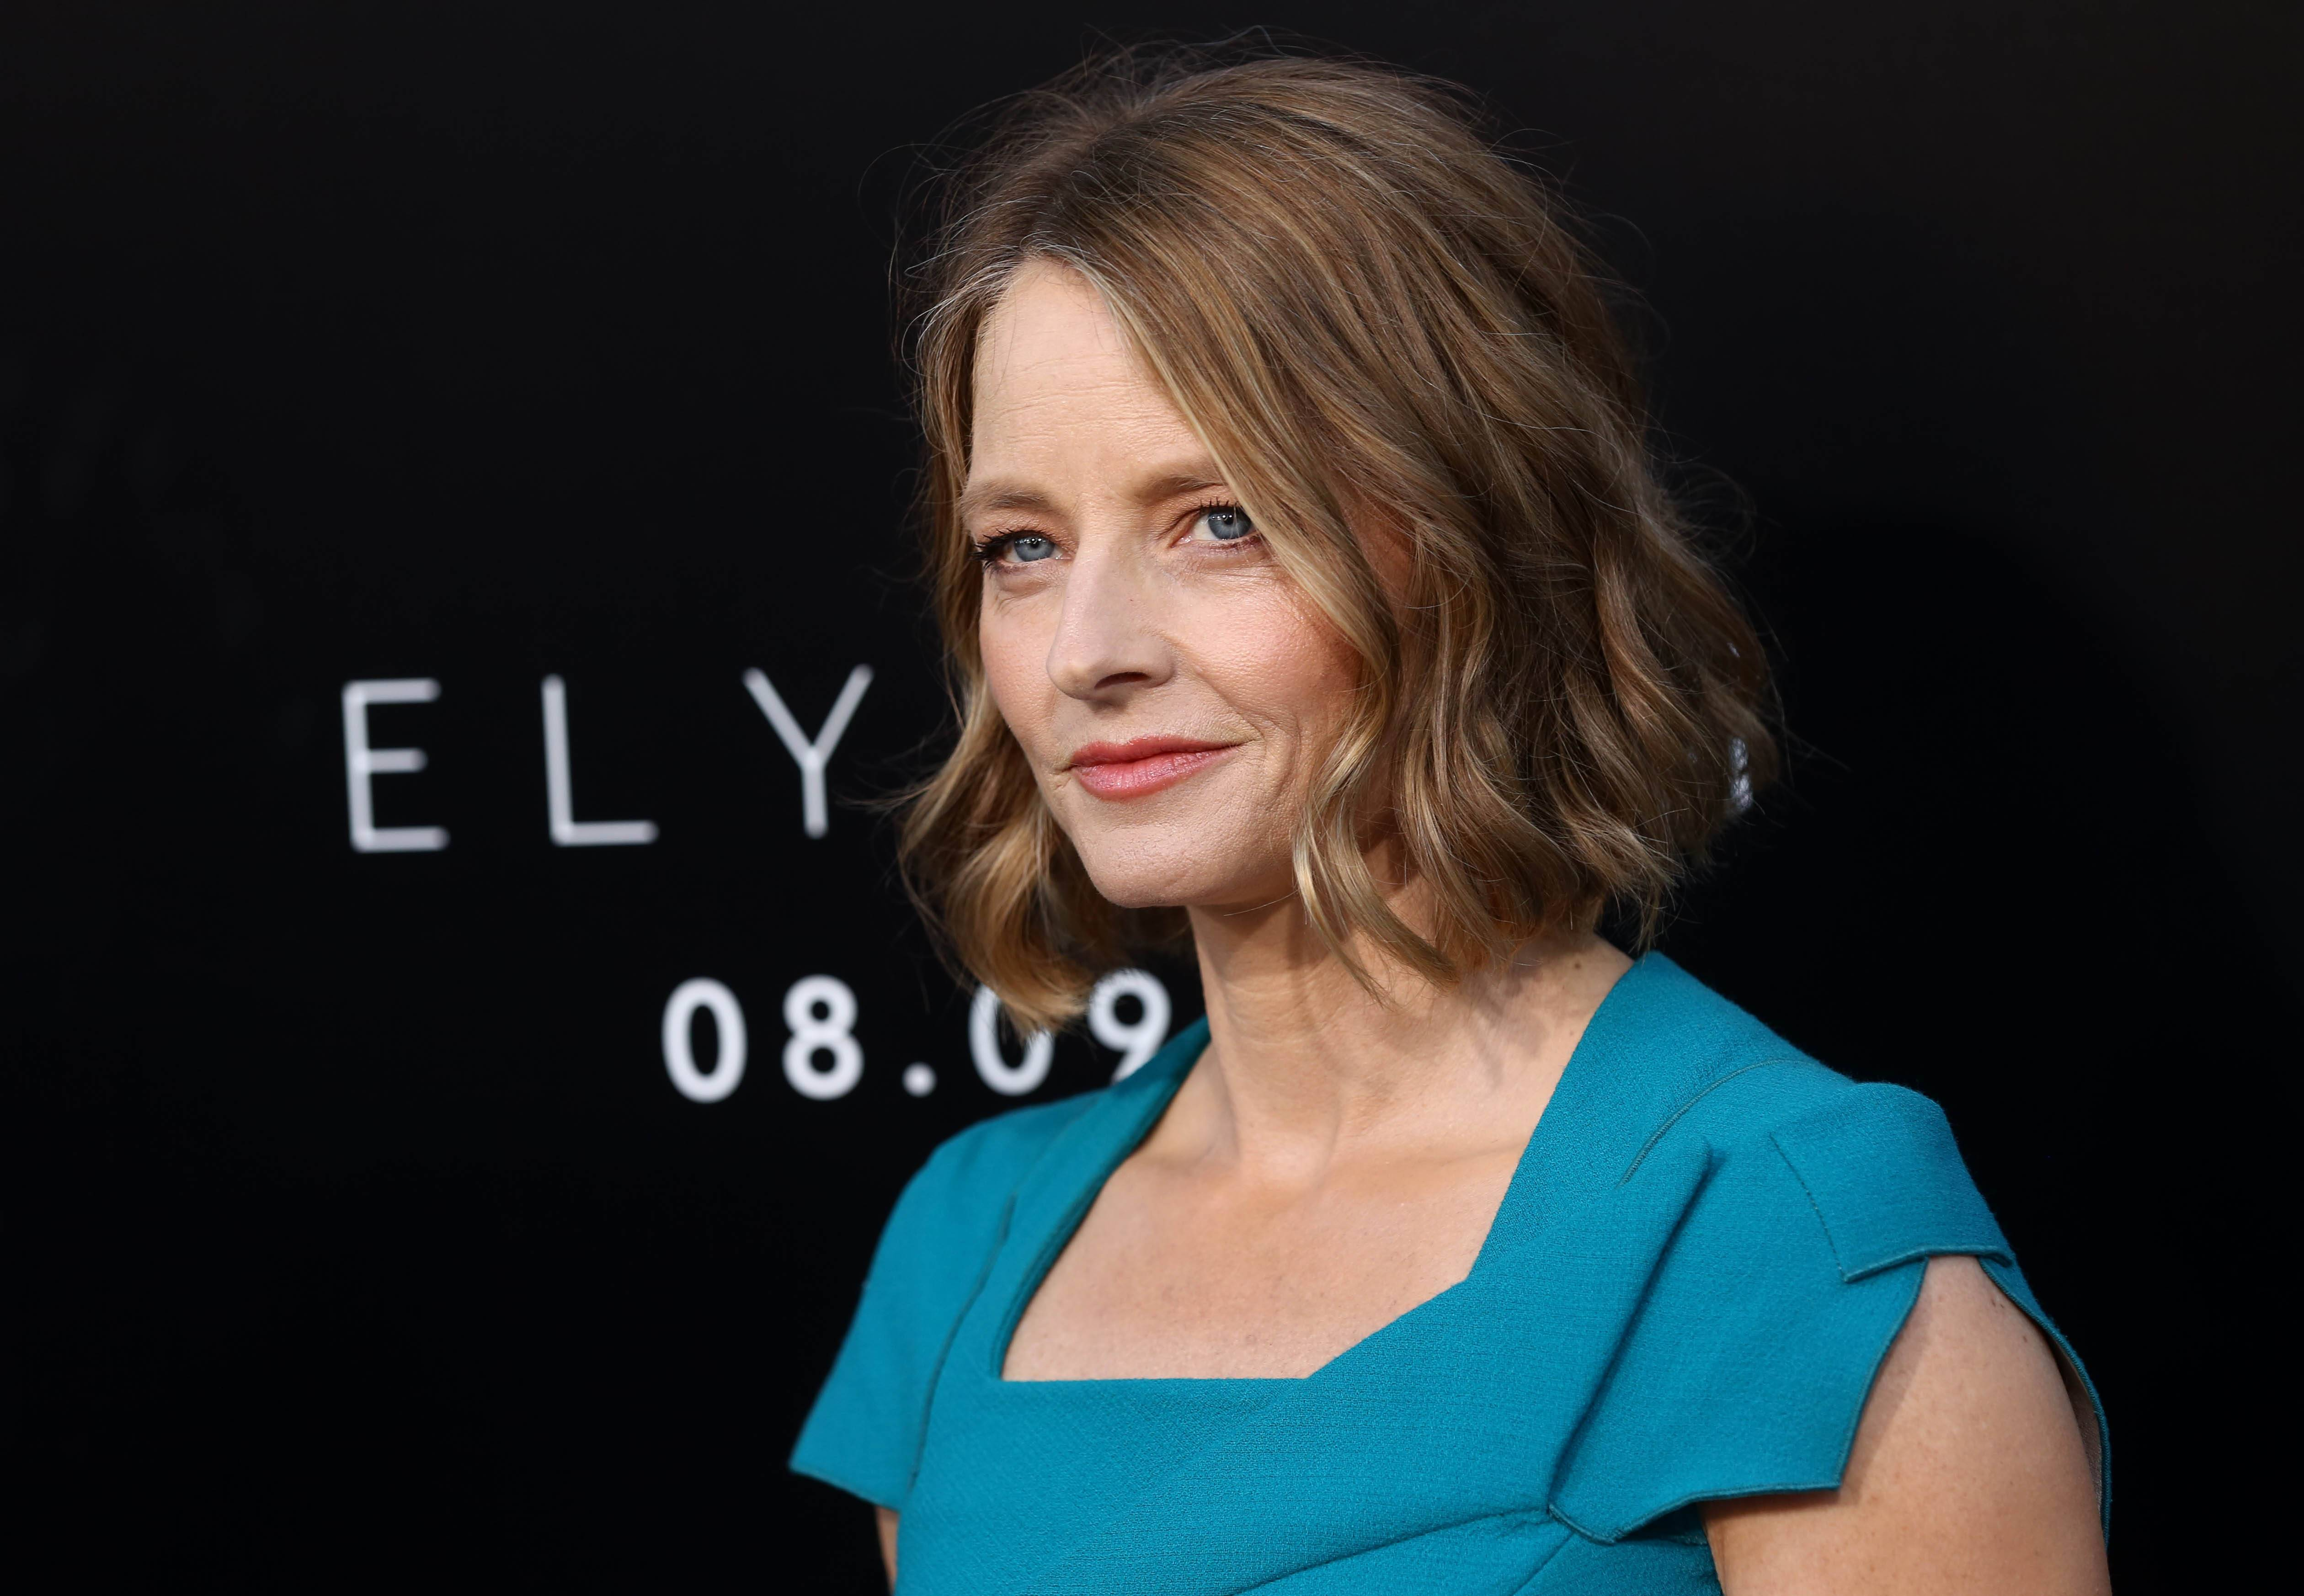 A representative for Jodie Foster confirms that she wed girlfriend Alexandra Hedison over the weekend. Publicist Jennifer Allen offered no other details Wednesday.